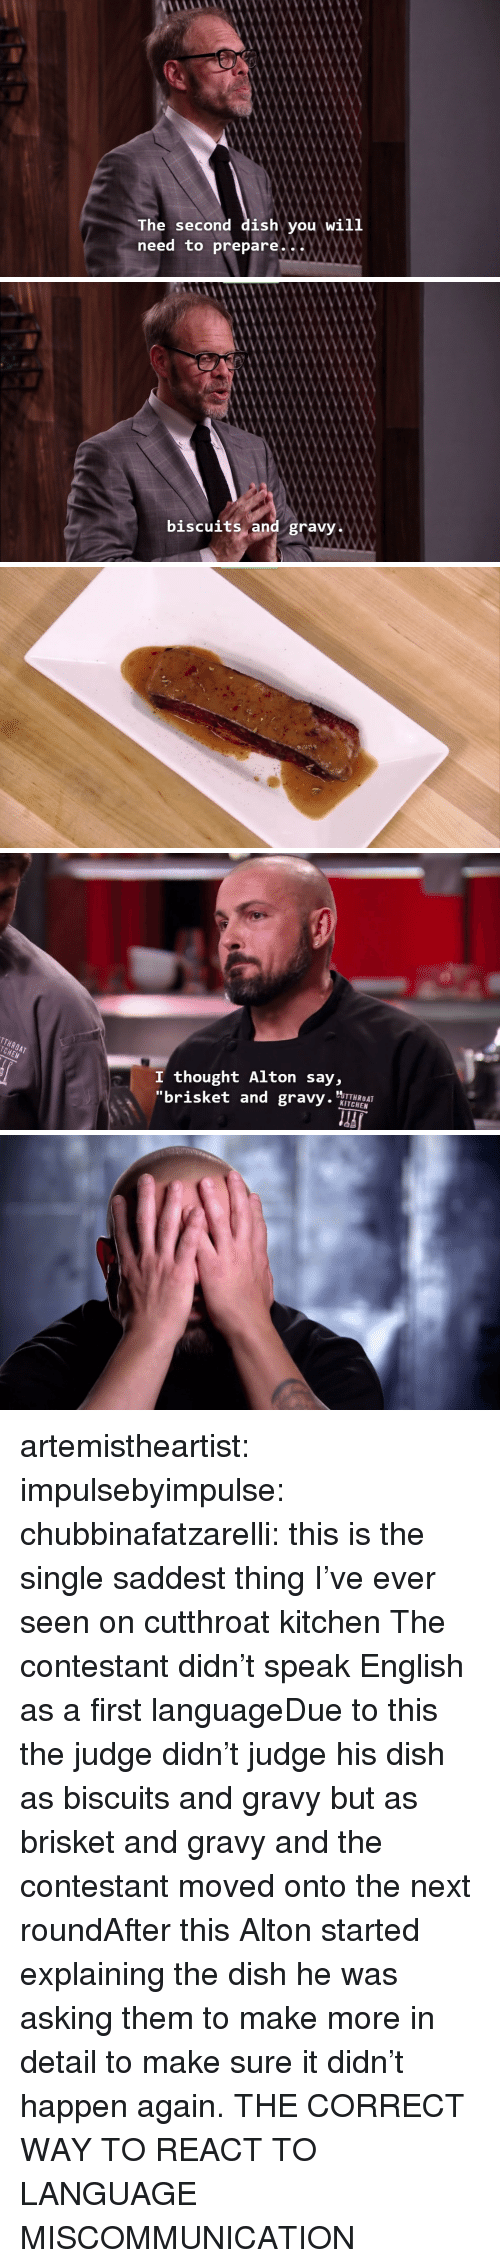 """Tumblr, Blog, and Dish: The second dish you will  need to prepare..X   and gravy   I thought Alton say,  """"brisket and gravy.  KITCHEN artemistheartist:  impulsebyimpulse:  chubbinafatzarelli:  this is the single saddest thing I've ever seen on cutthroat kitchen   The contestant didn't speak English as a first languageDue to this the judge didn't judge his dish as biscuits and gravy but as brisket and gravy and the contestant moved onto the next roundAfter this Alton started explaining the dish he was asking them to make more in detail to make sure it didn't happen again.  THE CORRECT WAY TO REACT TO LANGUAGE MISCOMMUNICATION"""